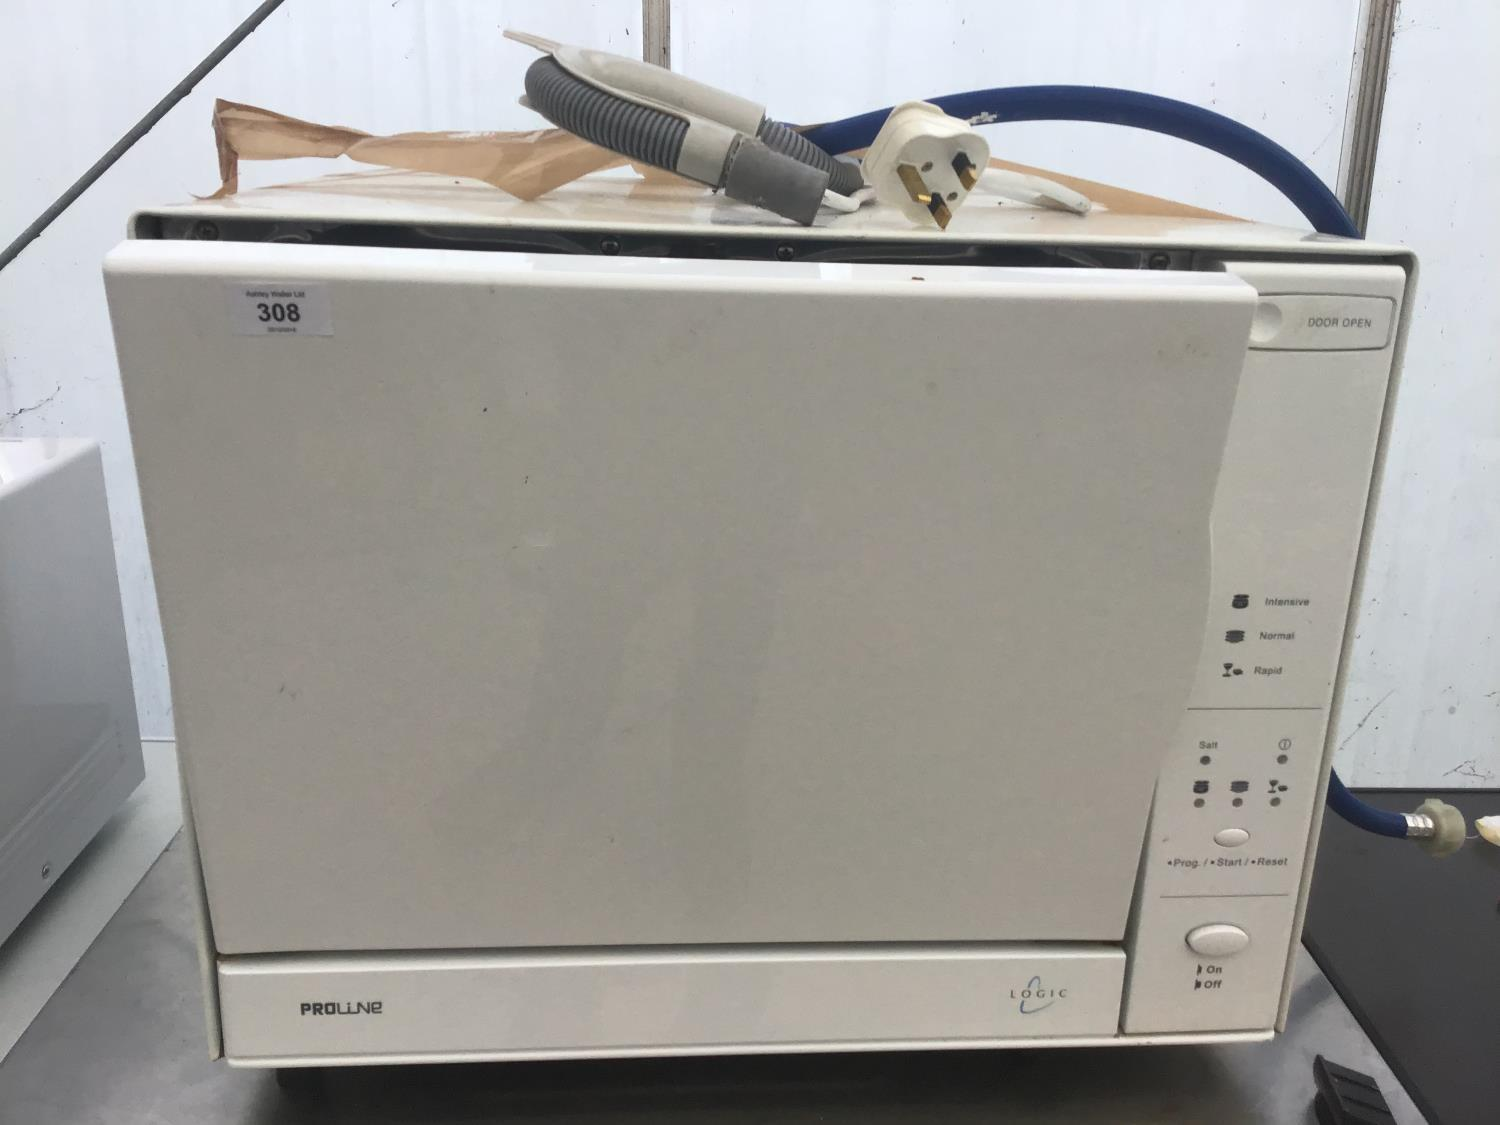 Lot 308 - A PROLINE LOGIC COUNTER TOP DISHWASHER IN WORKING ORDER